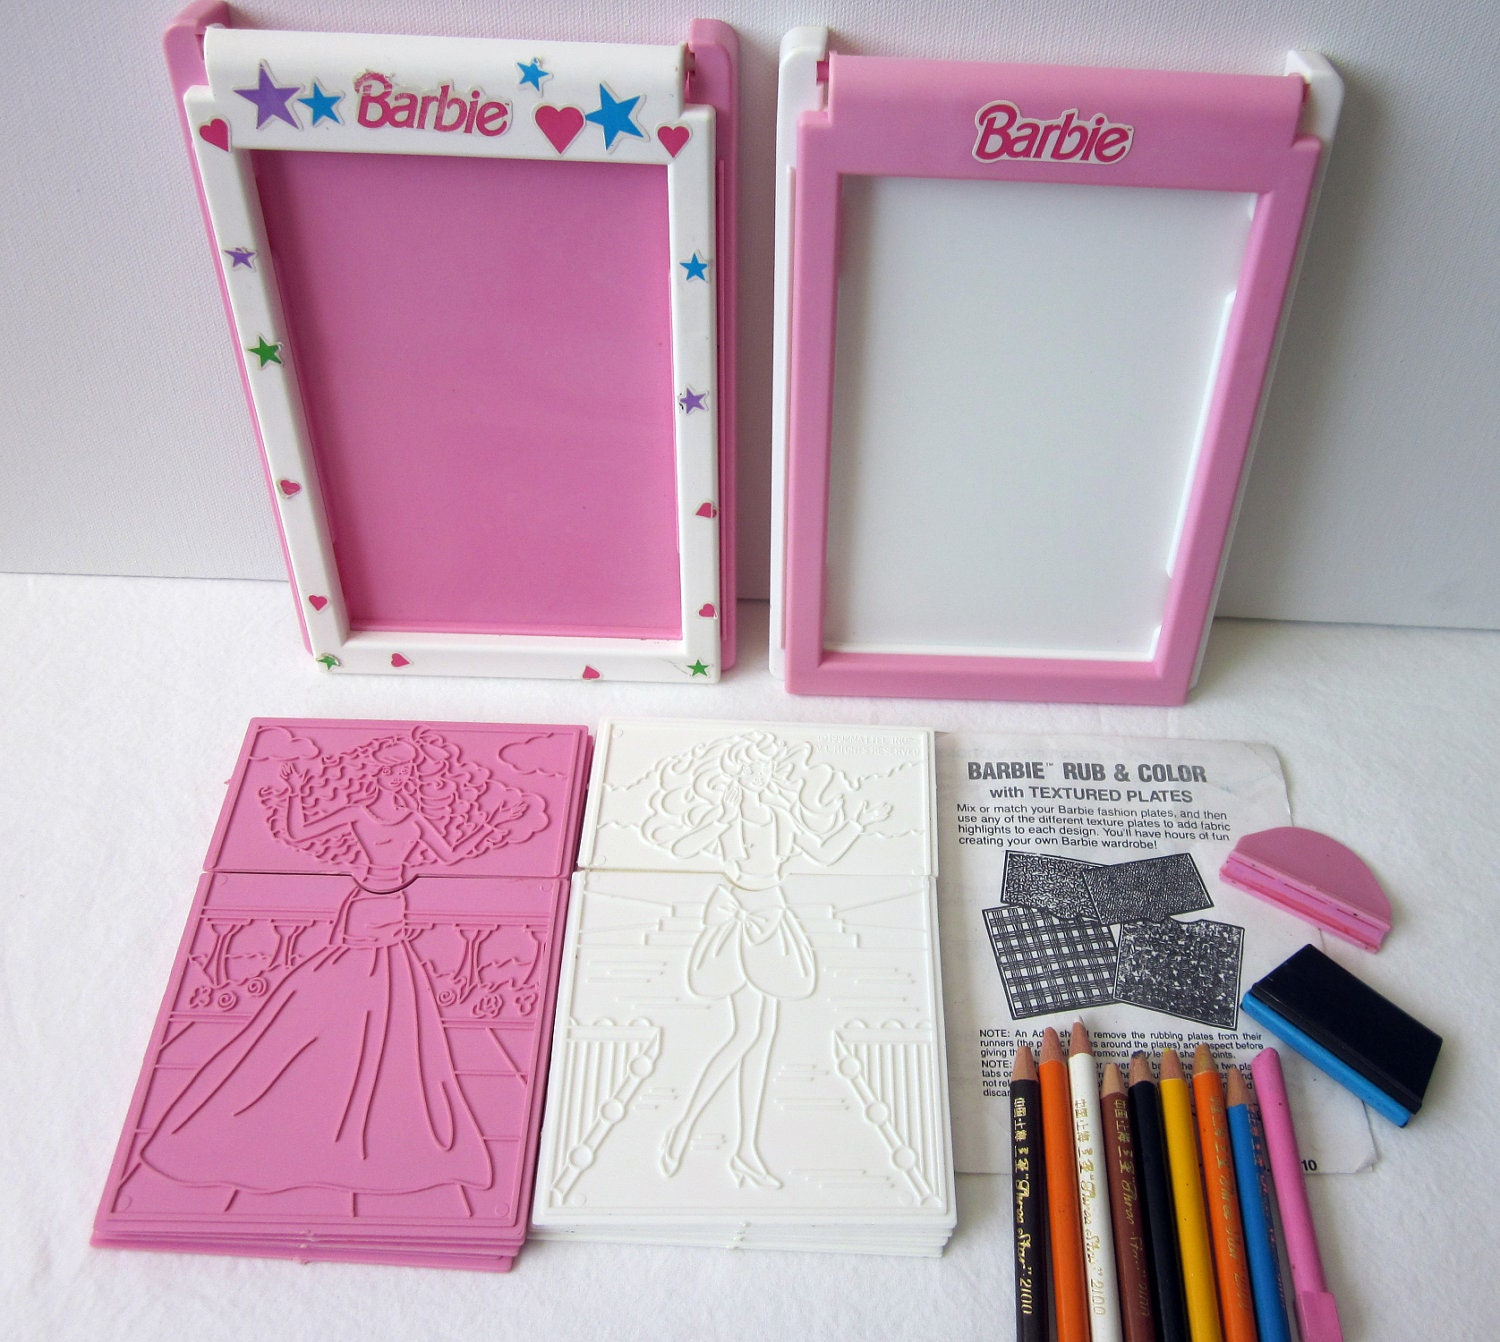 Barbie Fashion Plates Rubbing Barbie Fashion Plates zoom